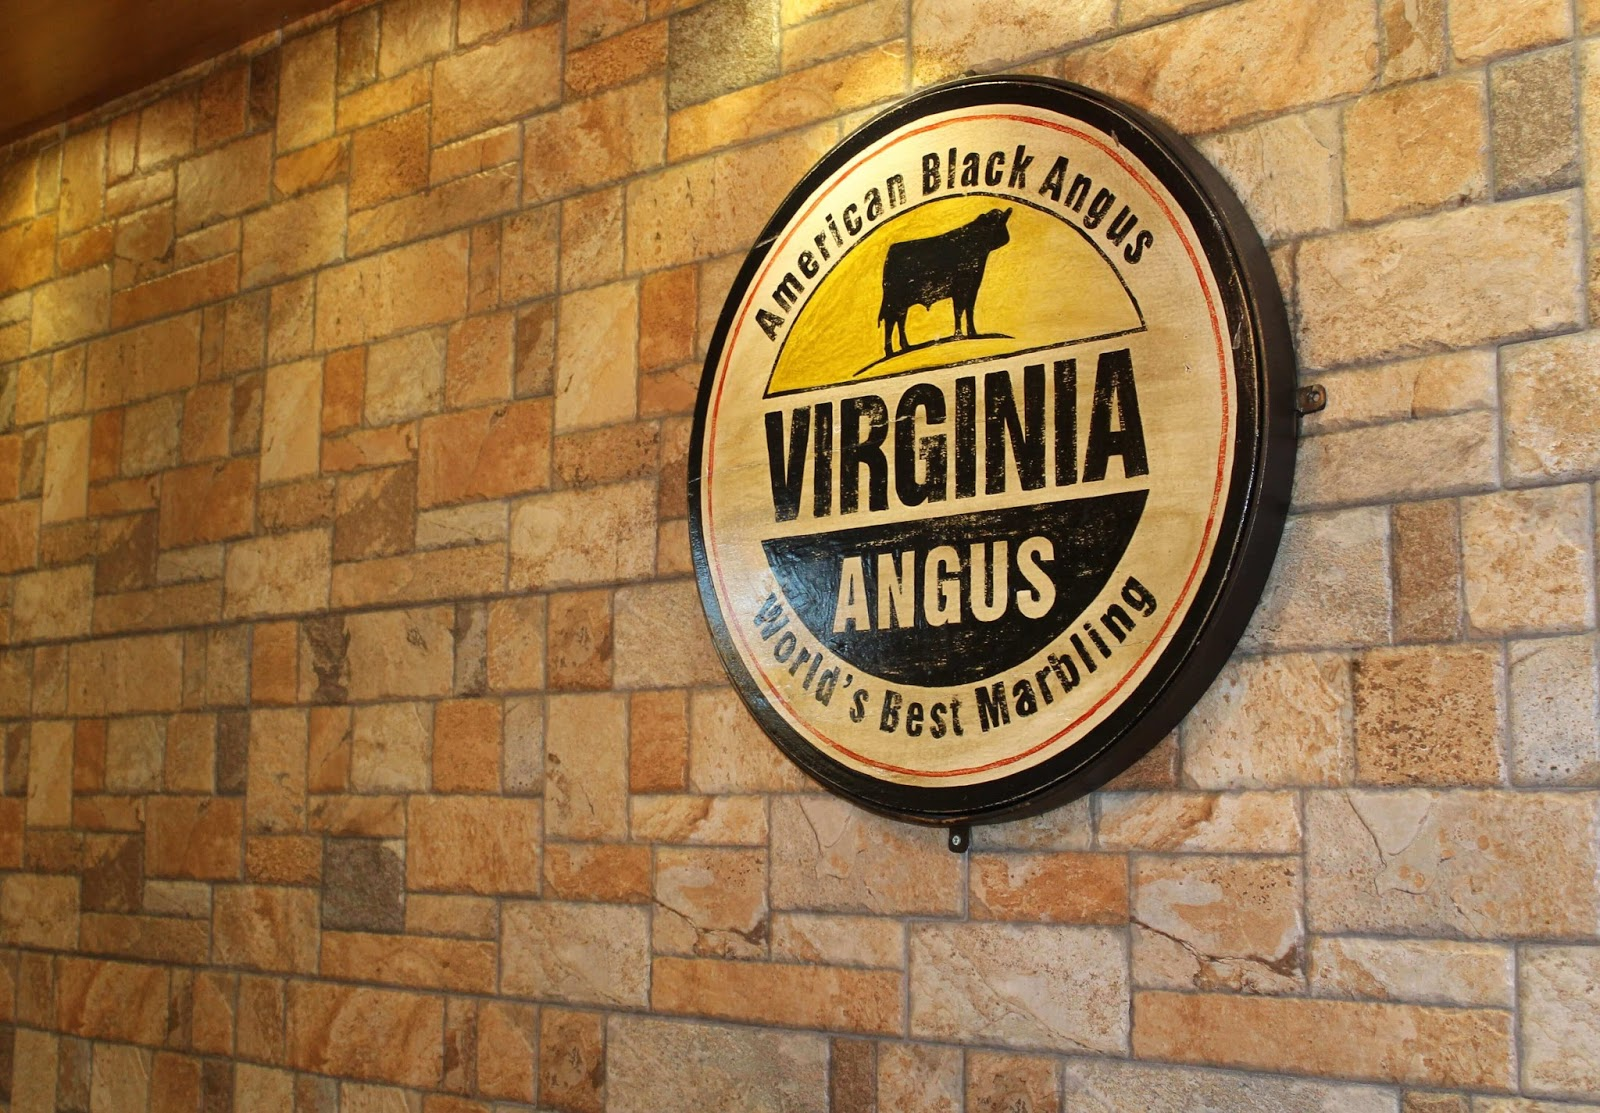 Virginia Angus Burger & Steak House Eminönü